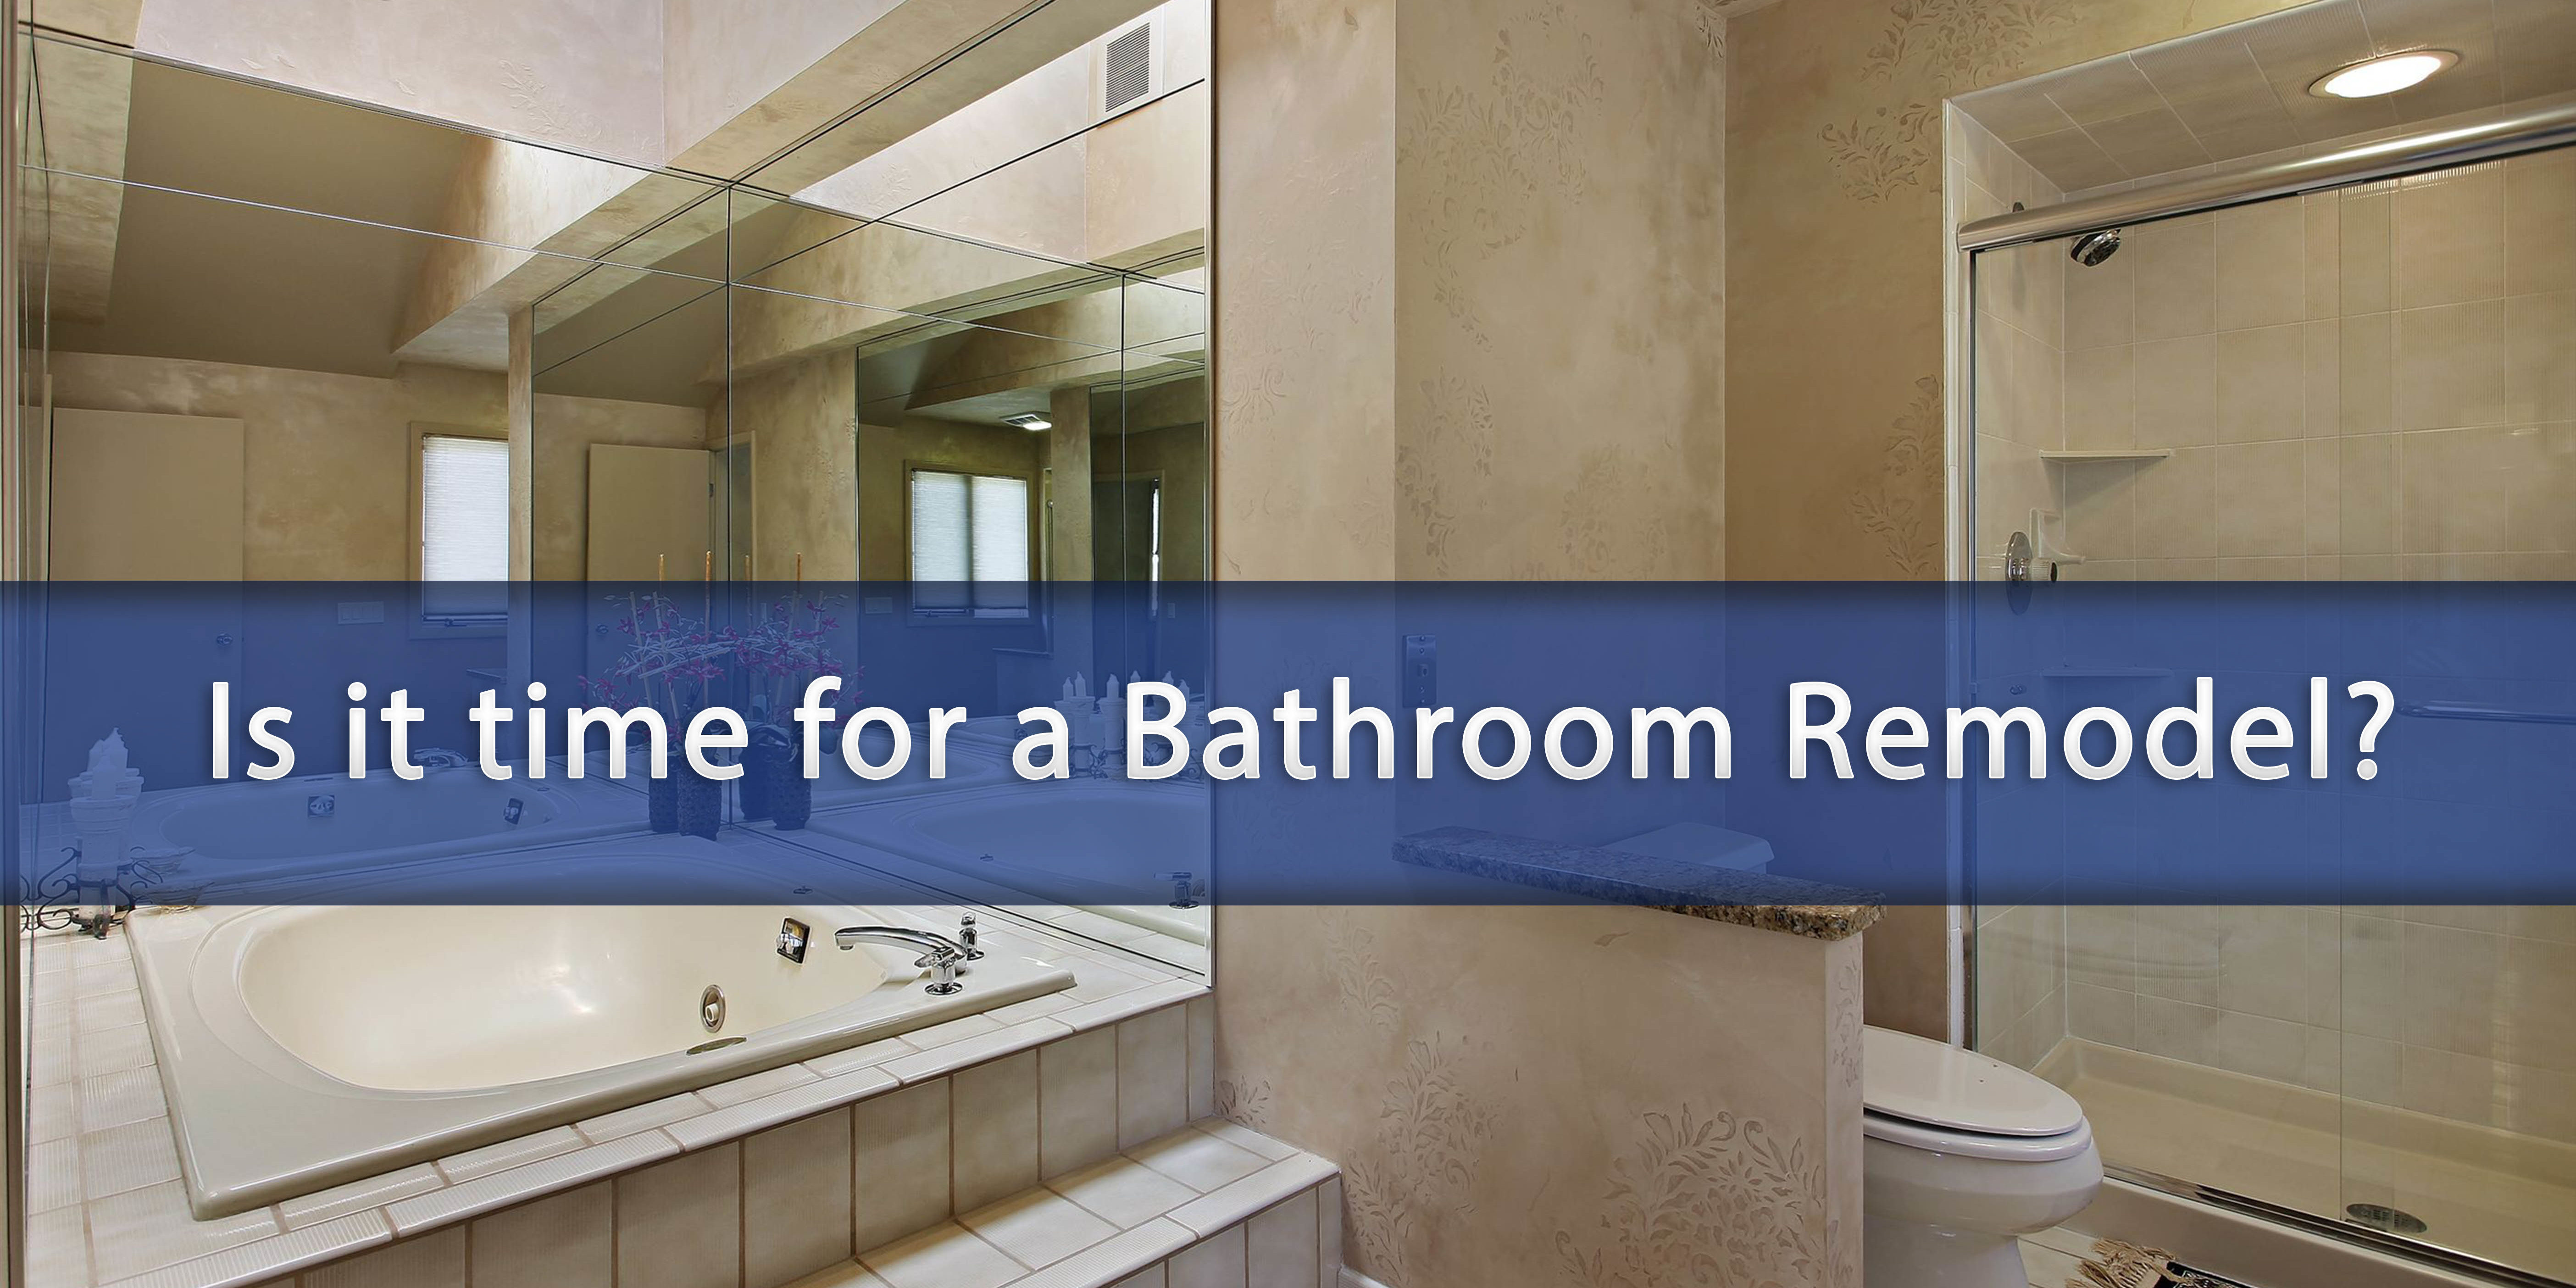 Is It Time For A Bathroom Remodel Argo Construction Services - Time to remodel bathroom